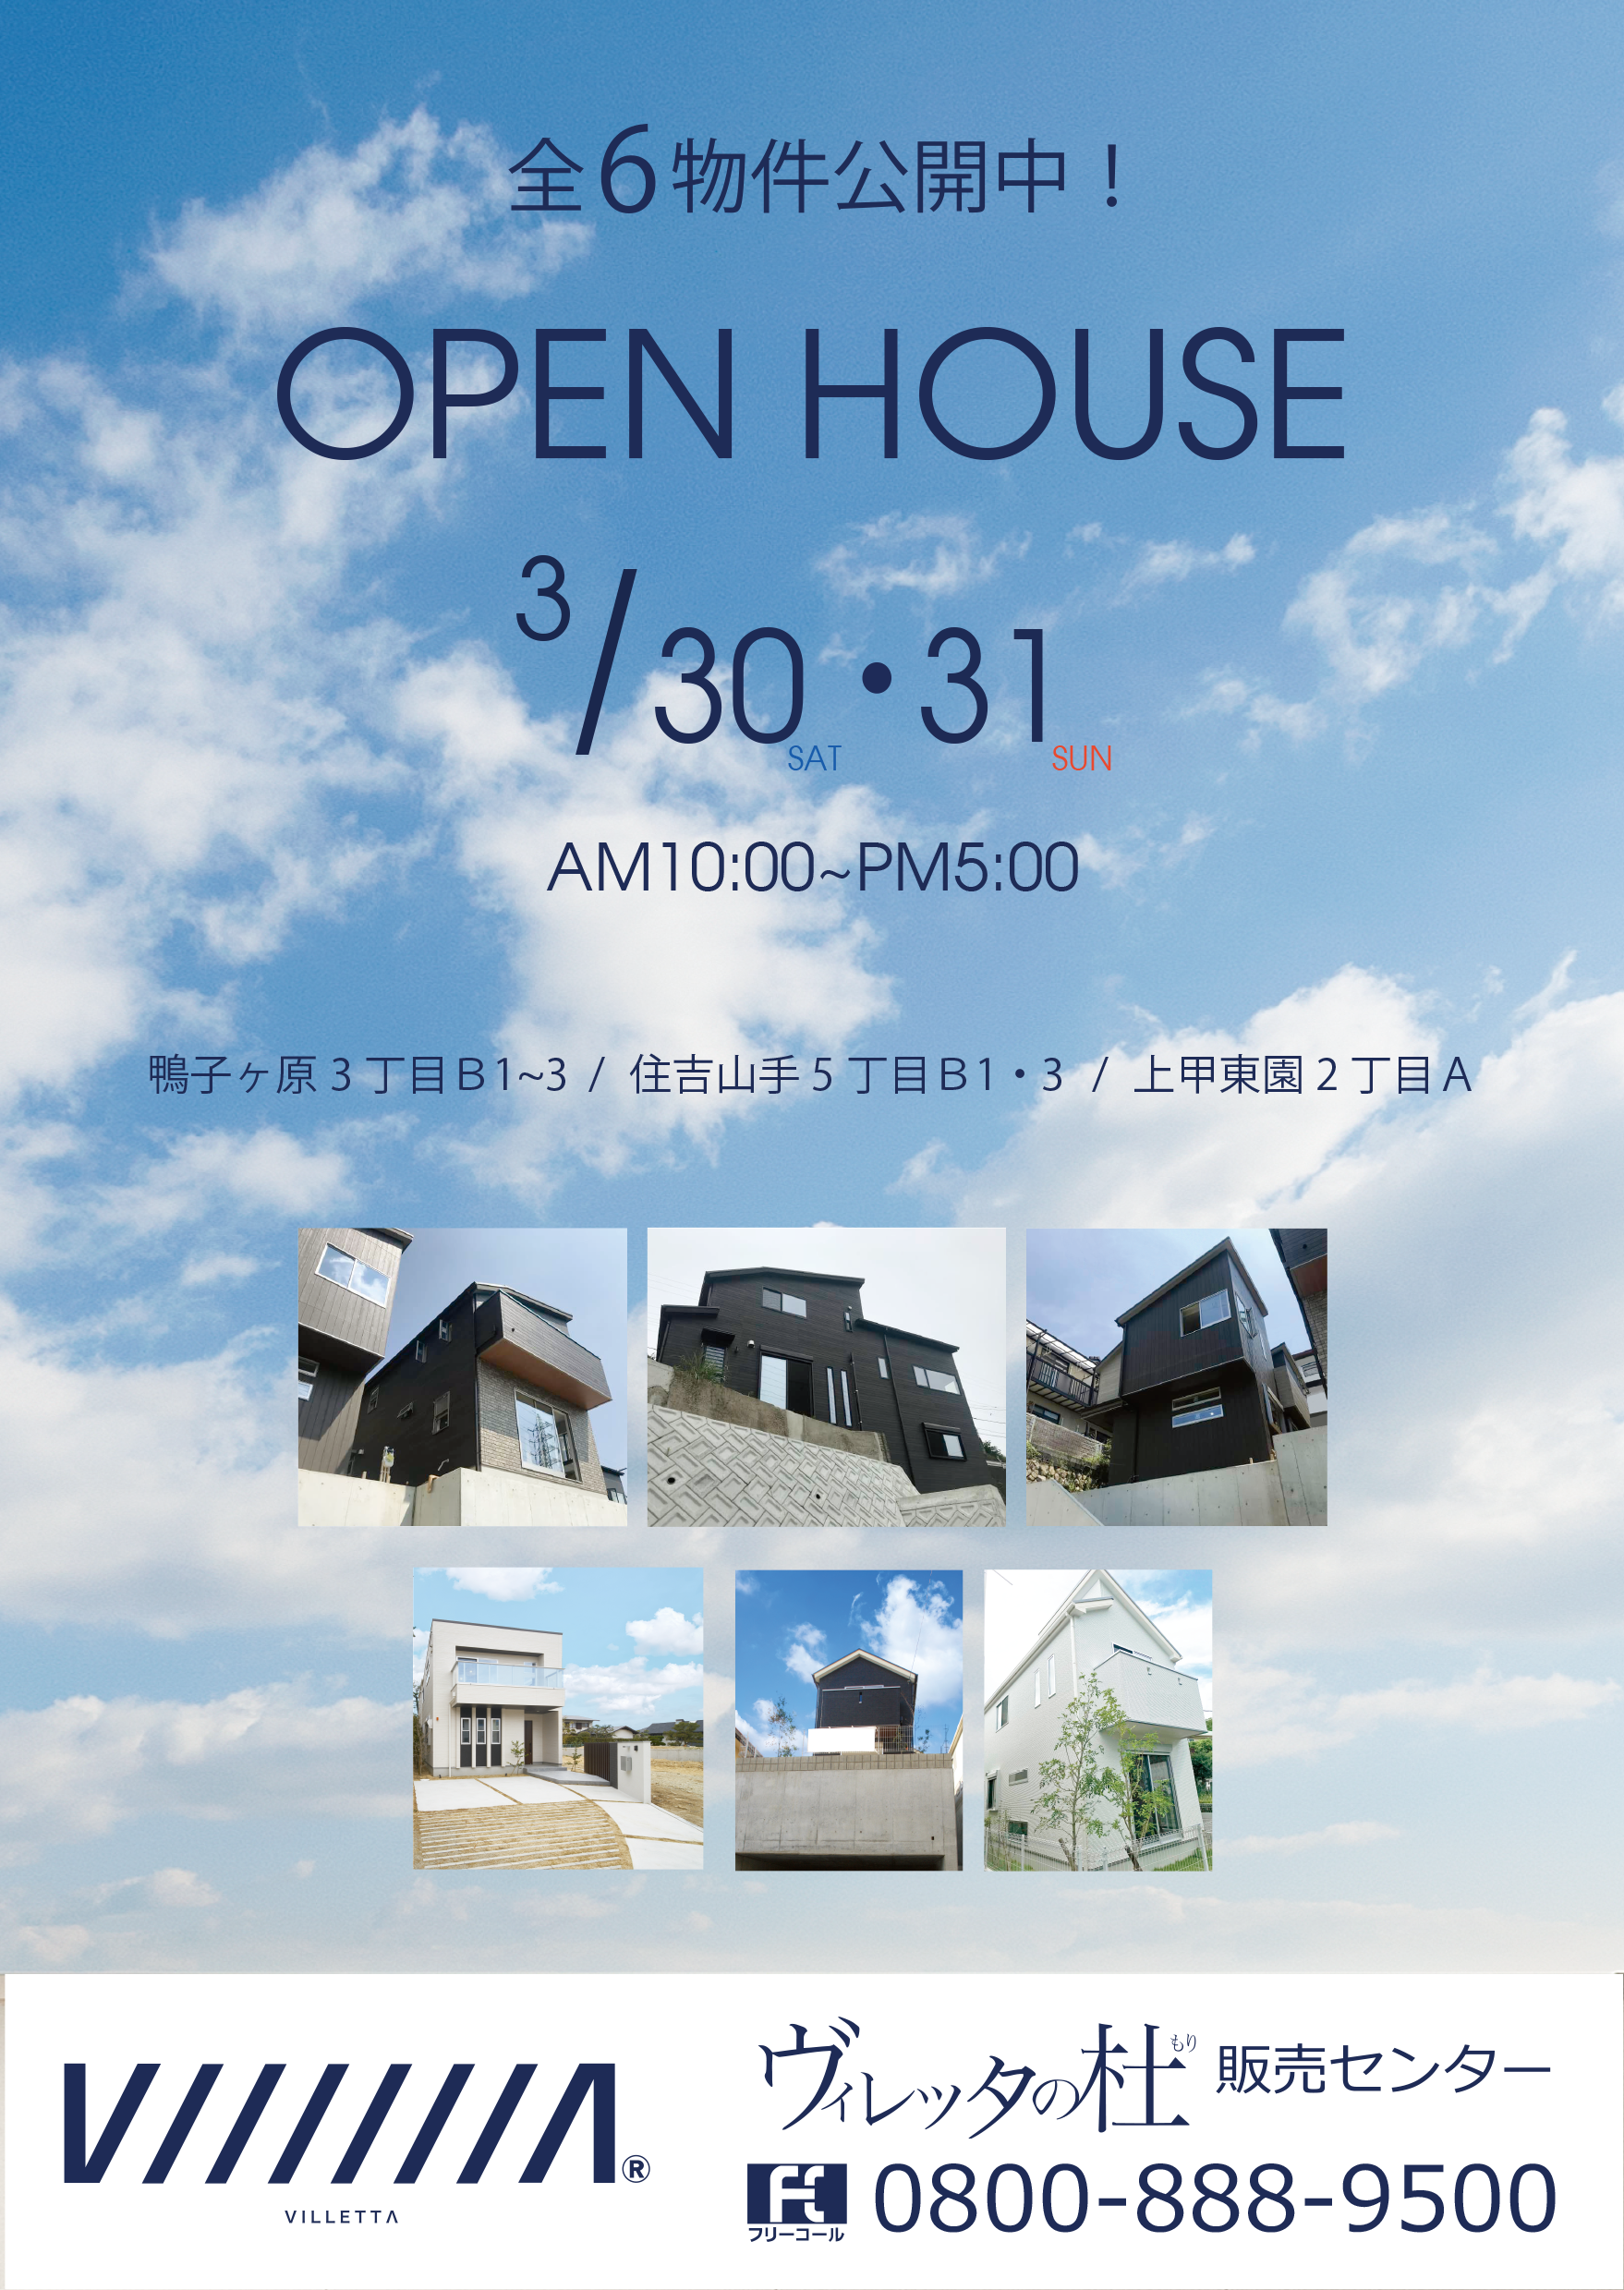 OPEN HOUSE03300331